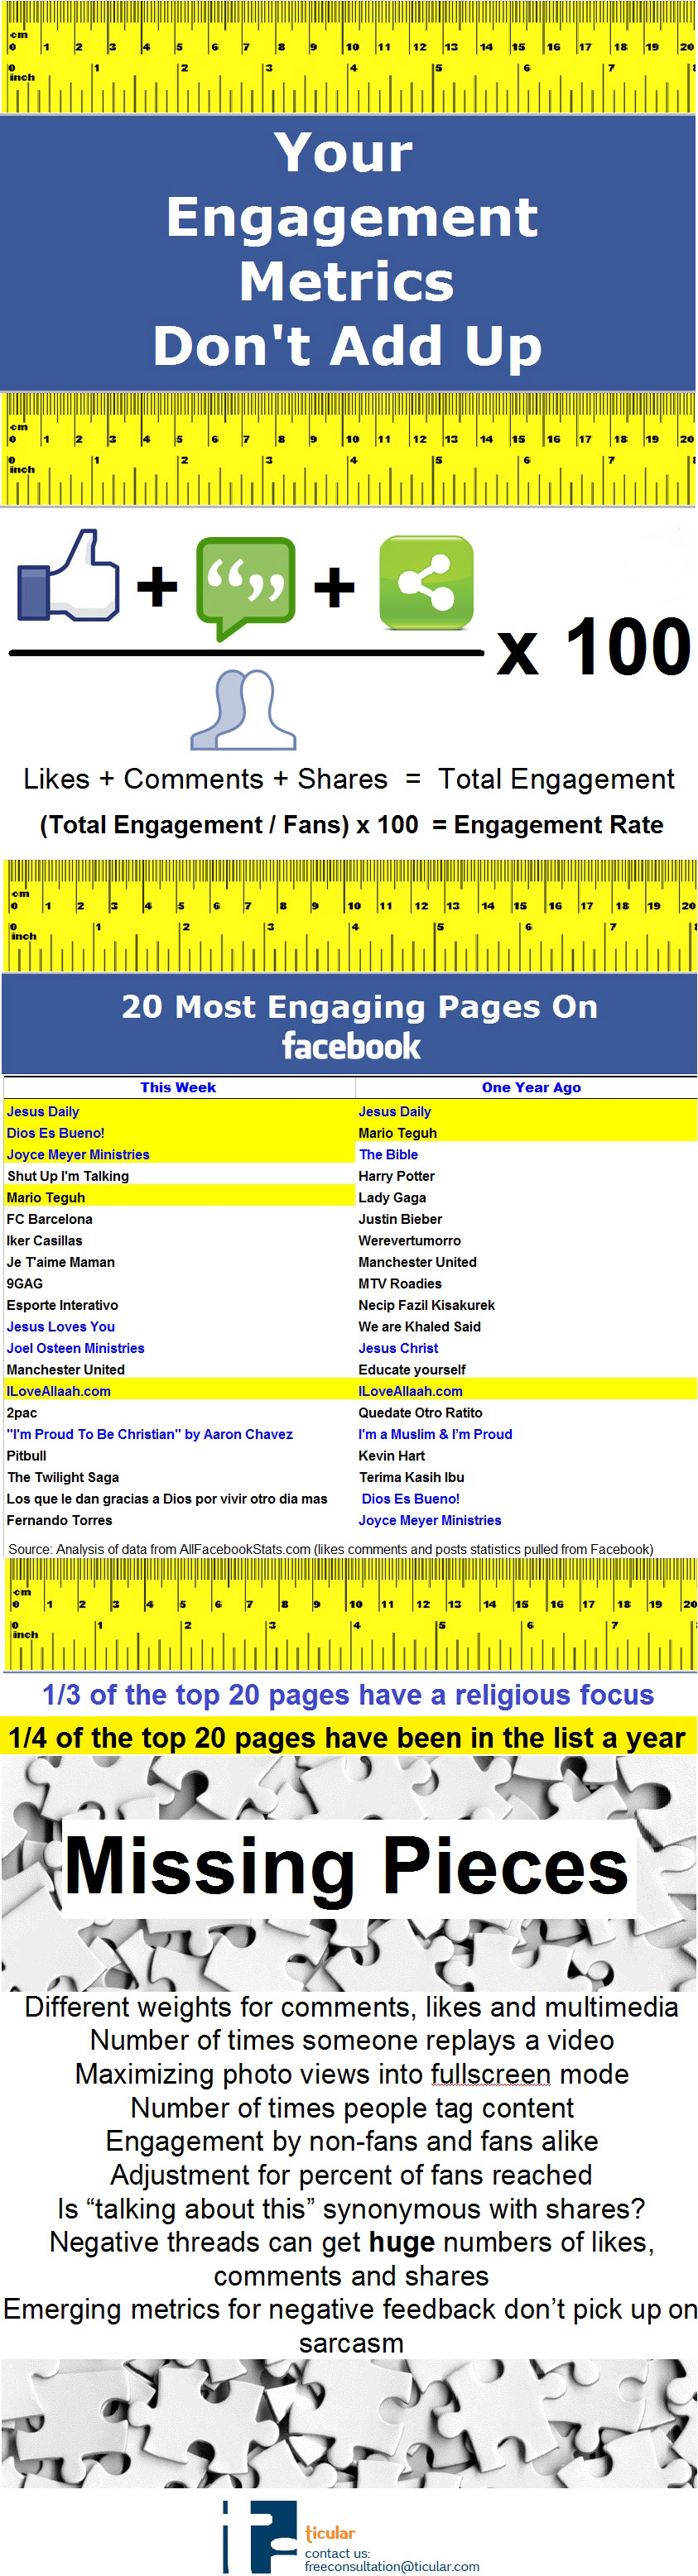 Facebook-Engagement-Metrics-infographic